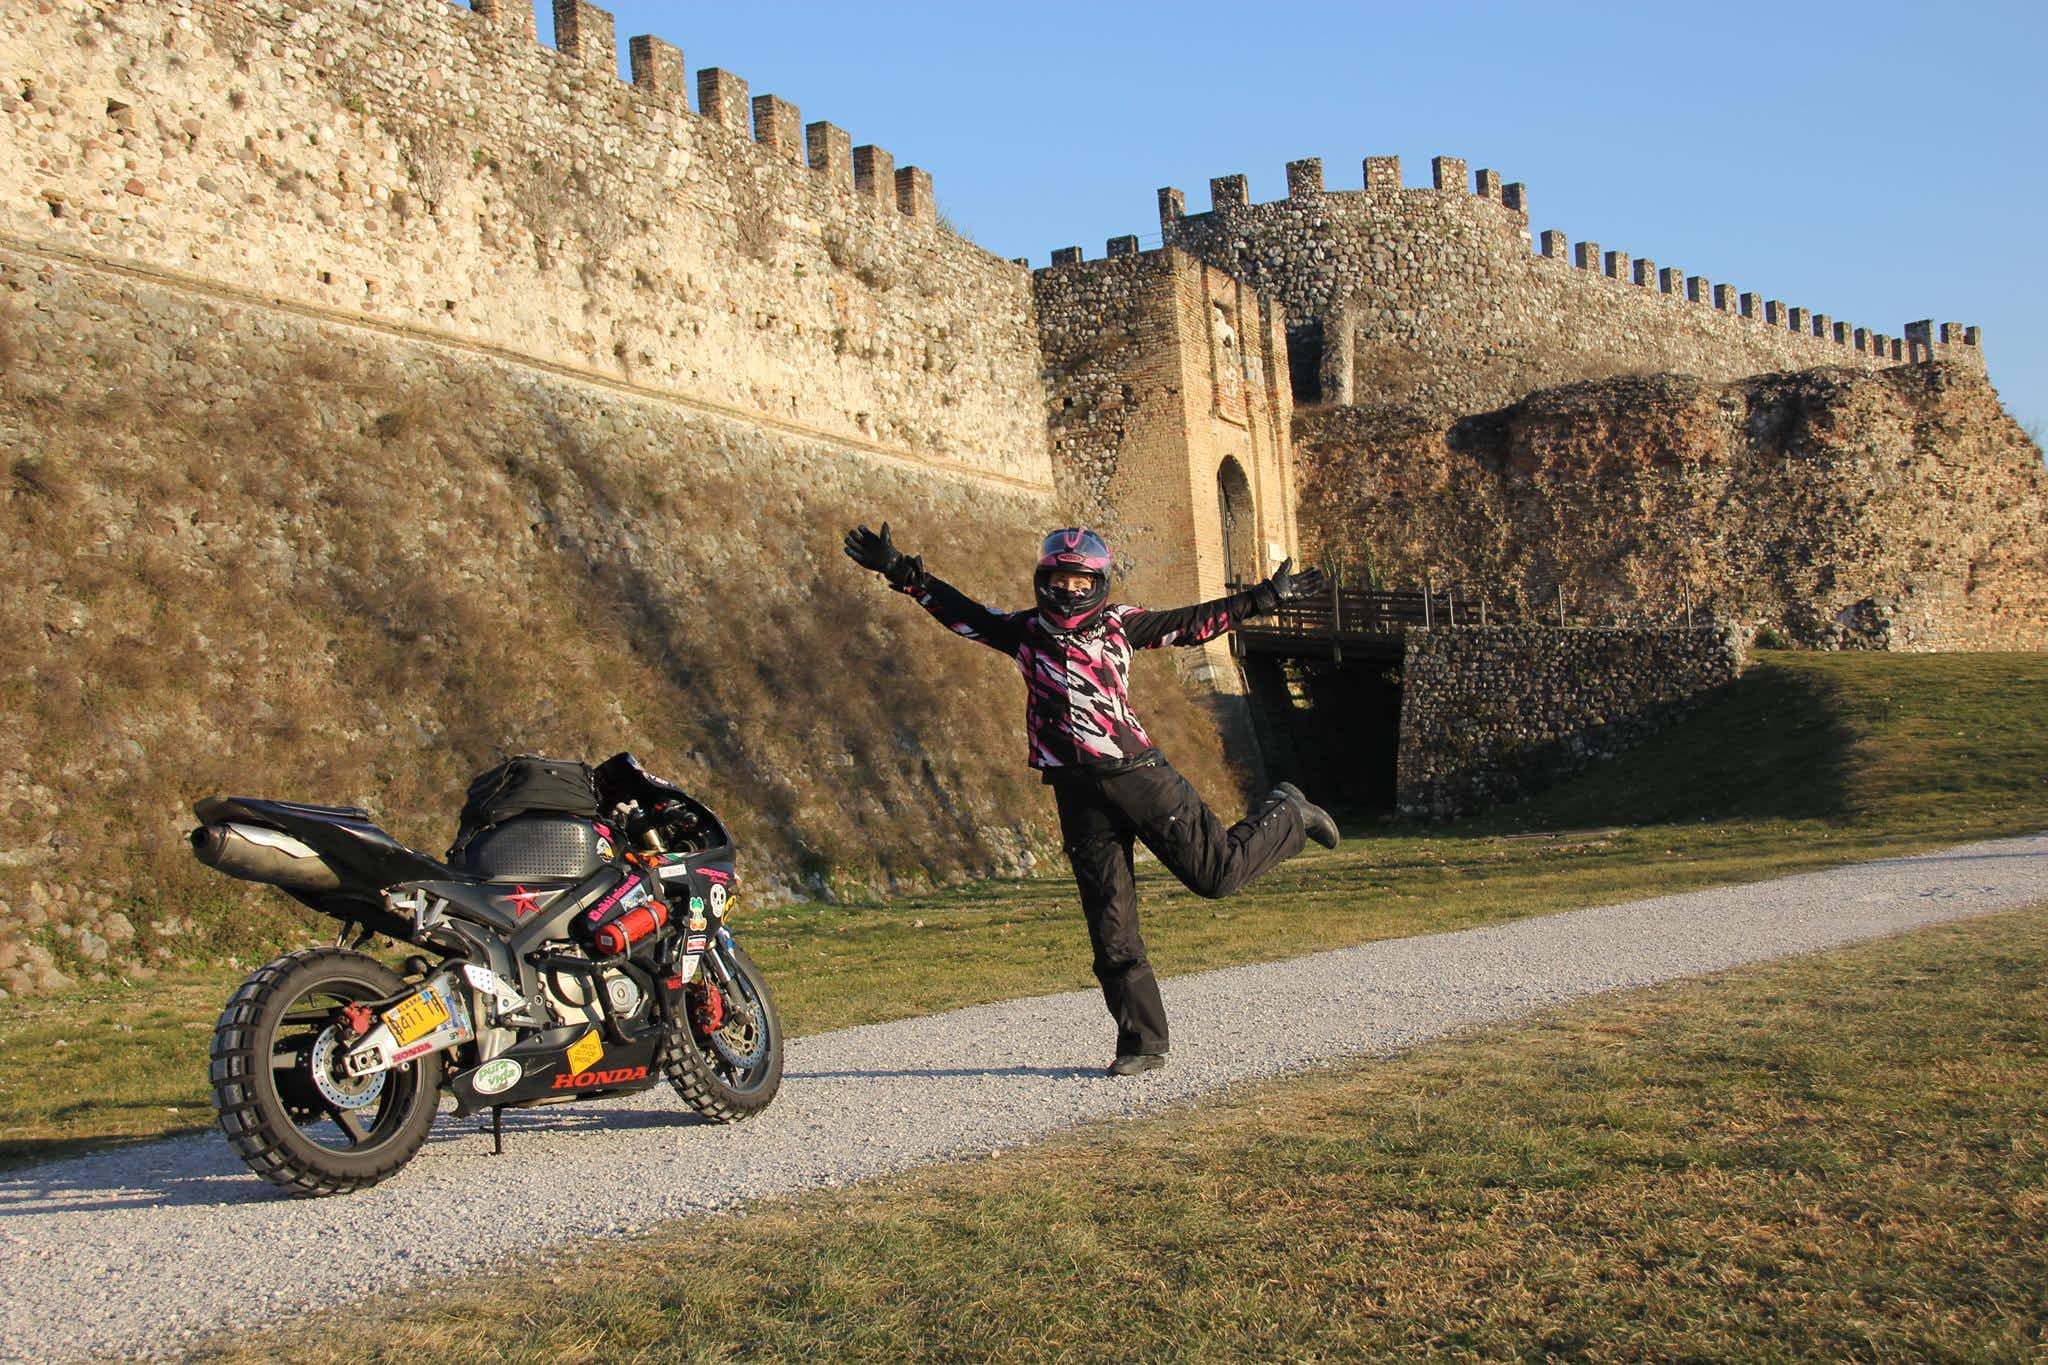 This woman has been exploring the world on her motorbike for two years